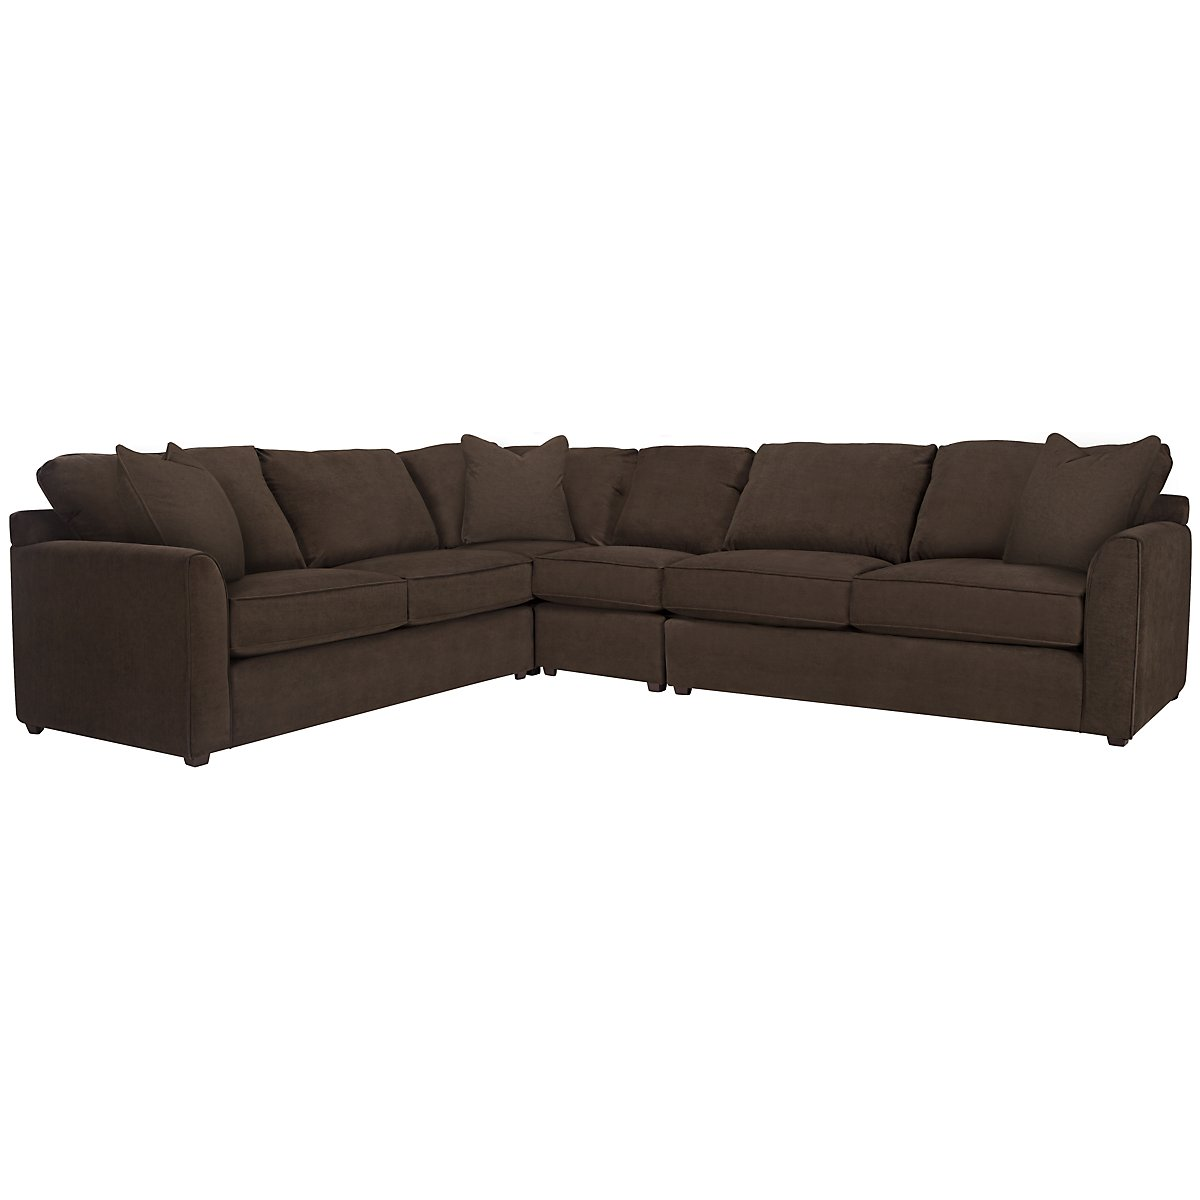 Express3 Dark Brown Microfiber Large Two-Arm Sectional